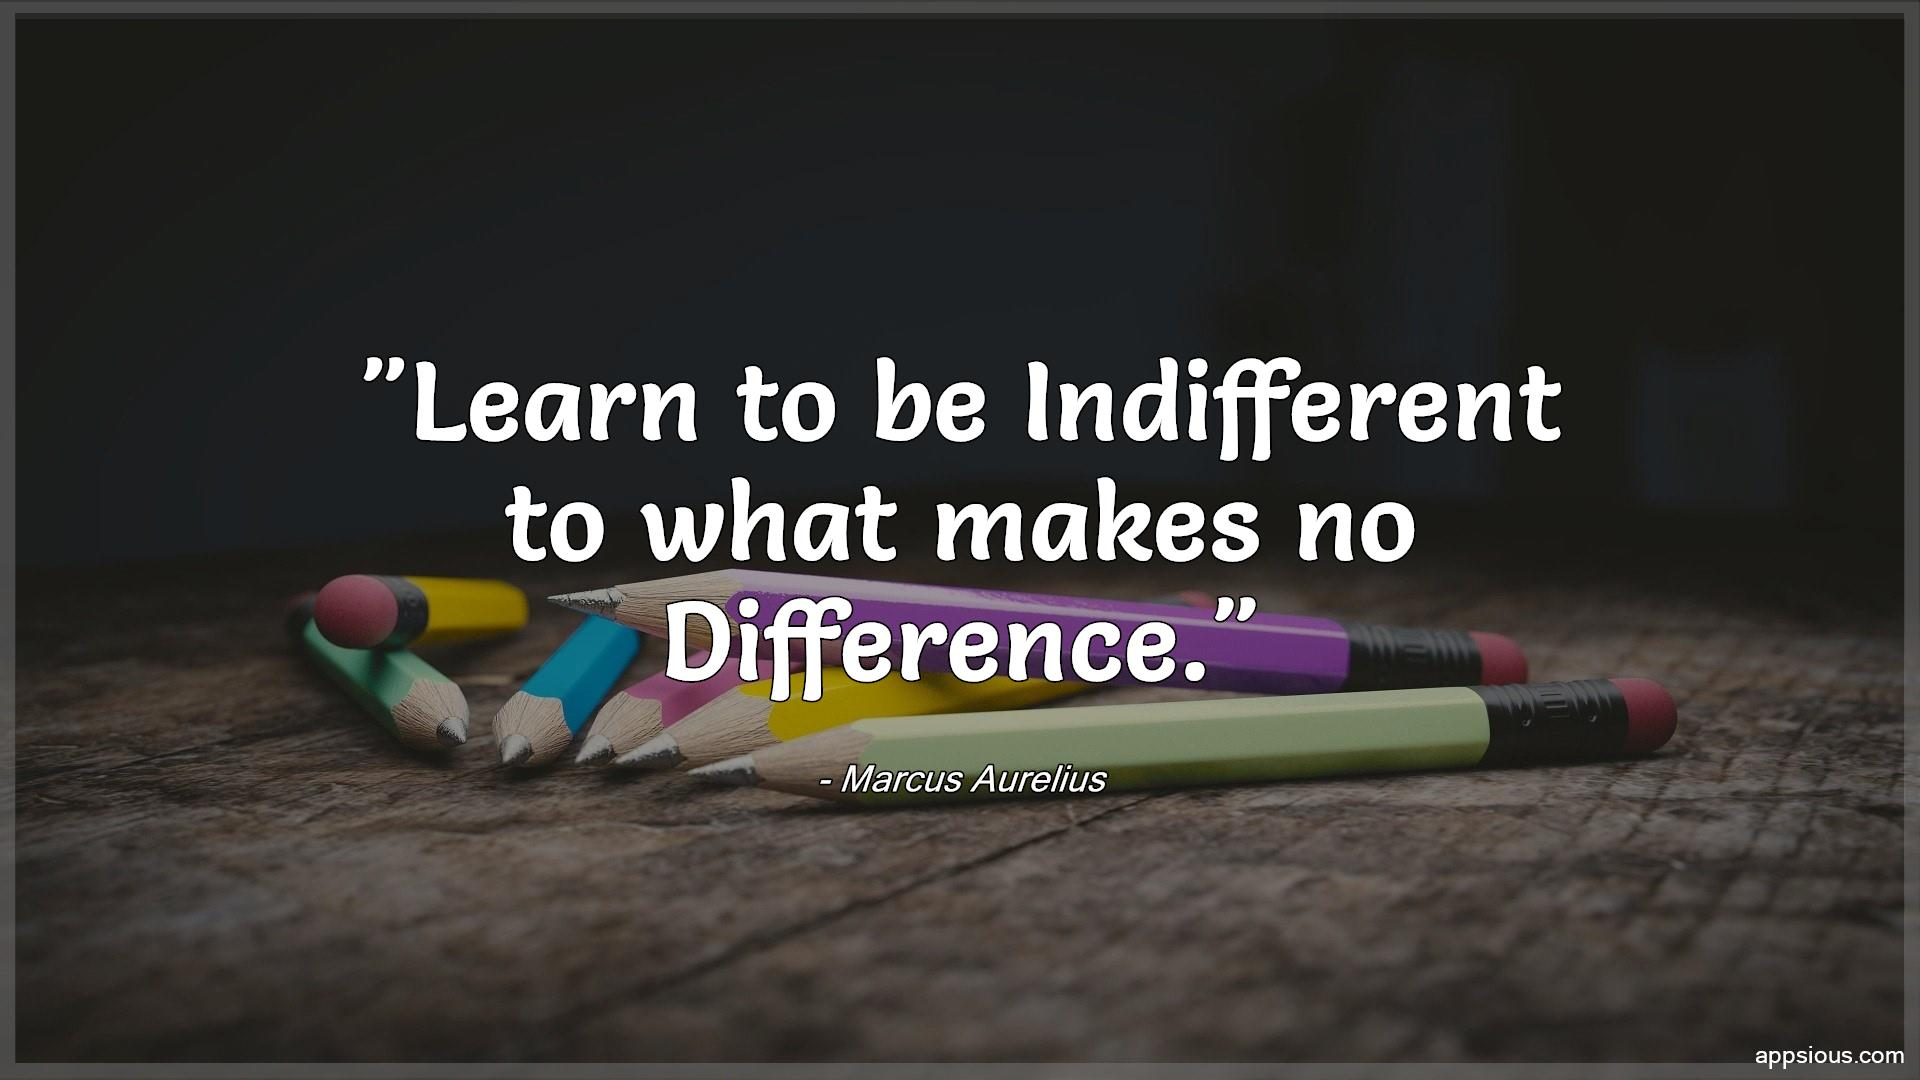 Learn to be Indifferent to what makes no Difference.